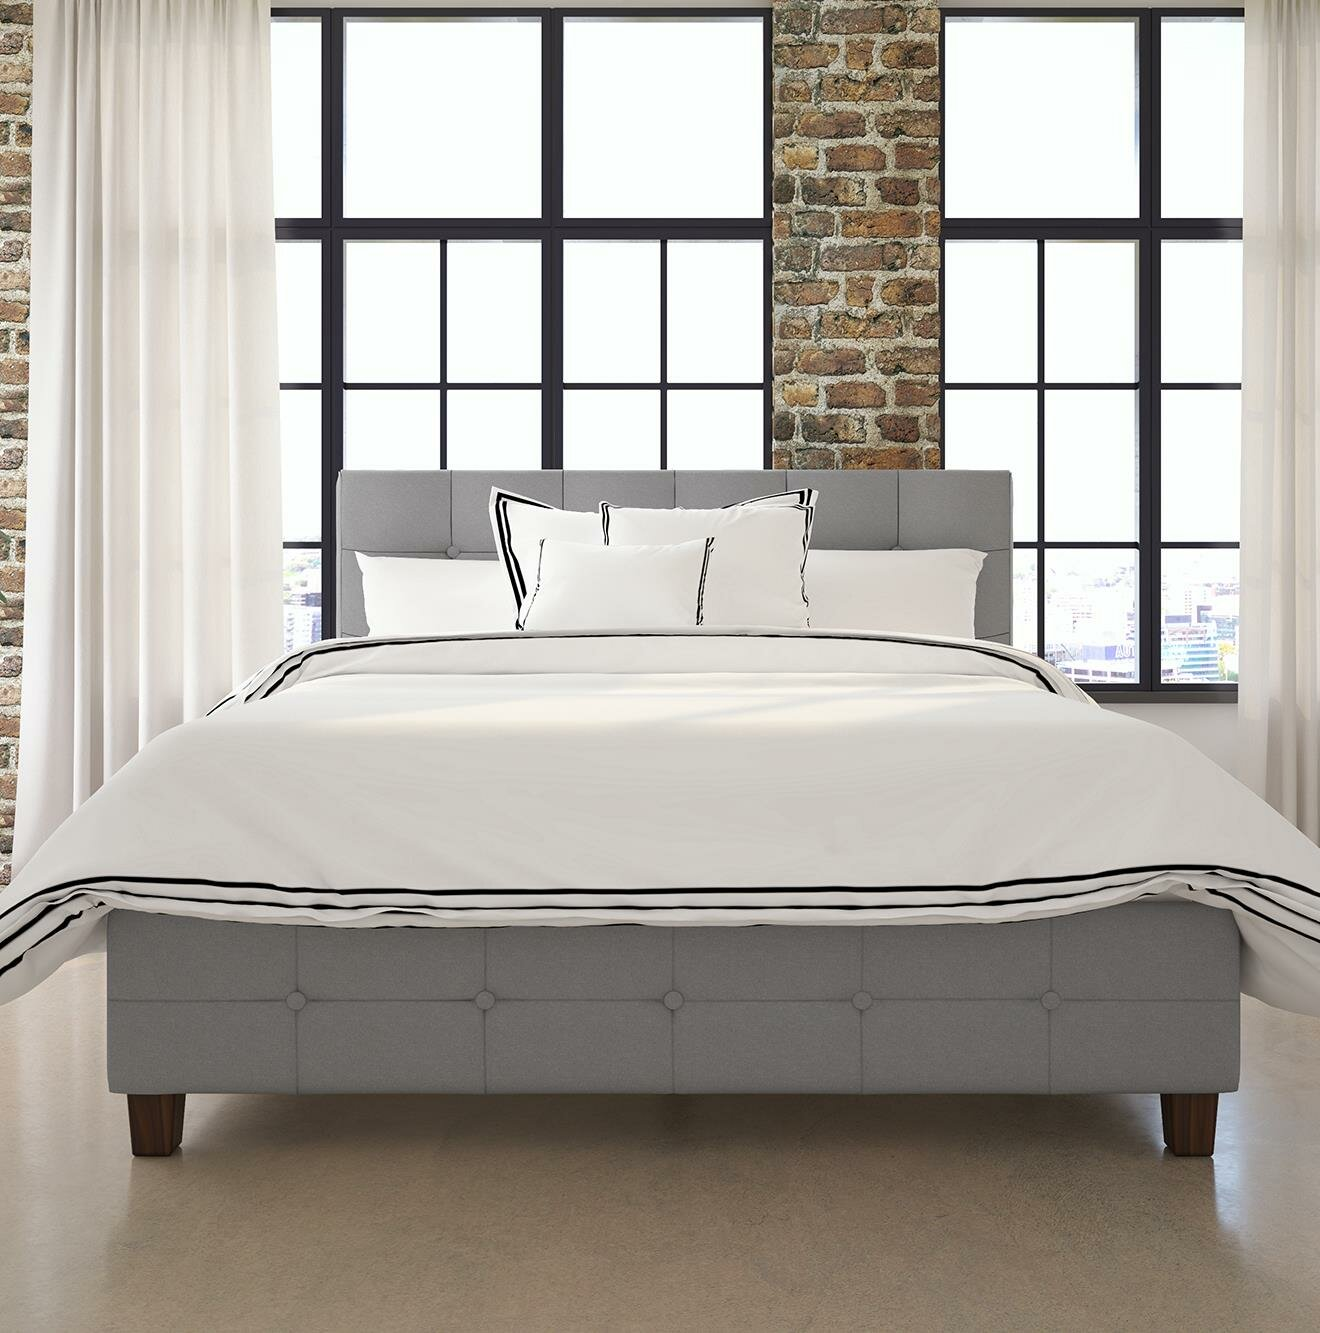 Andover Mills Amherst Upholstered Platform Bed & Reviews | Wayfair